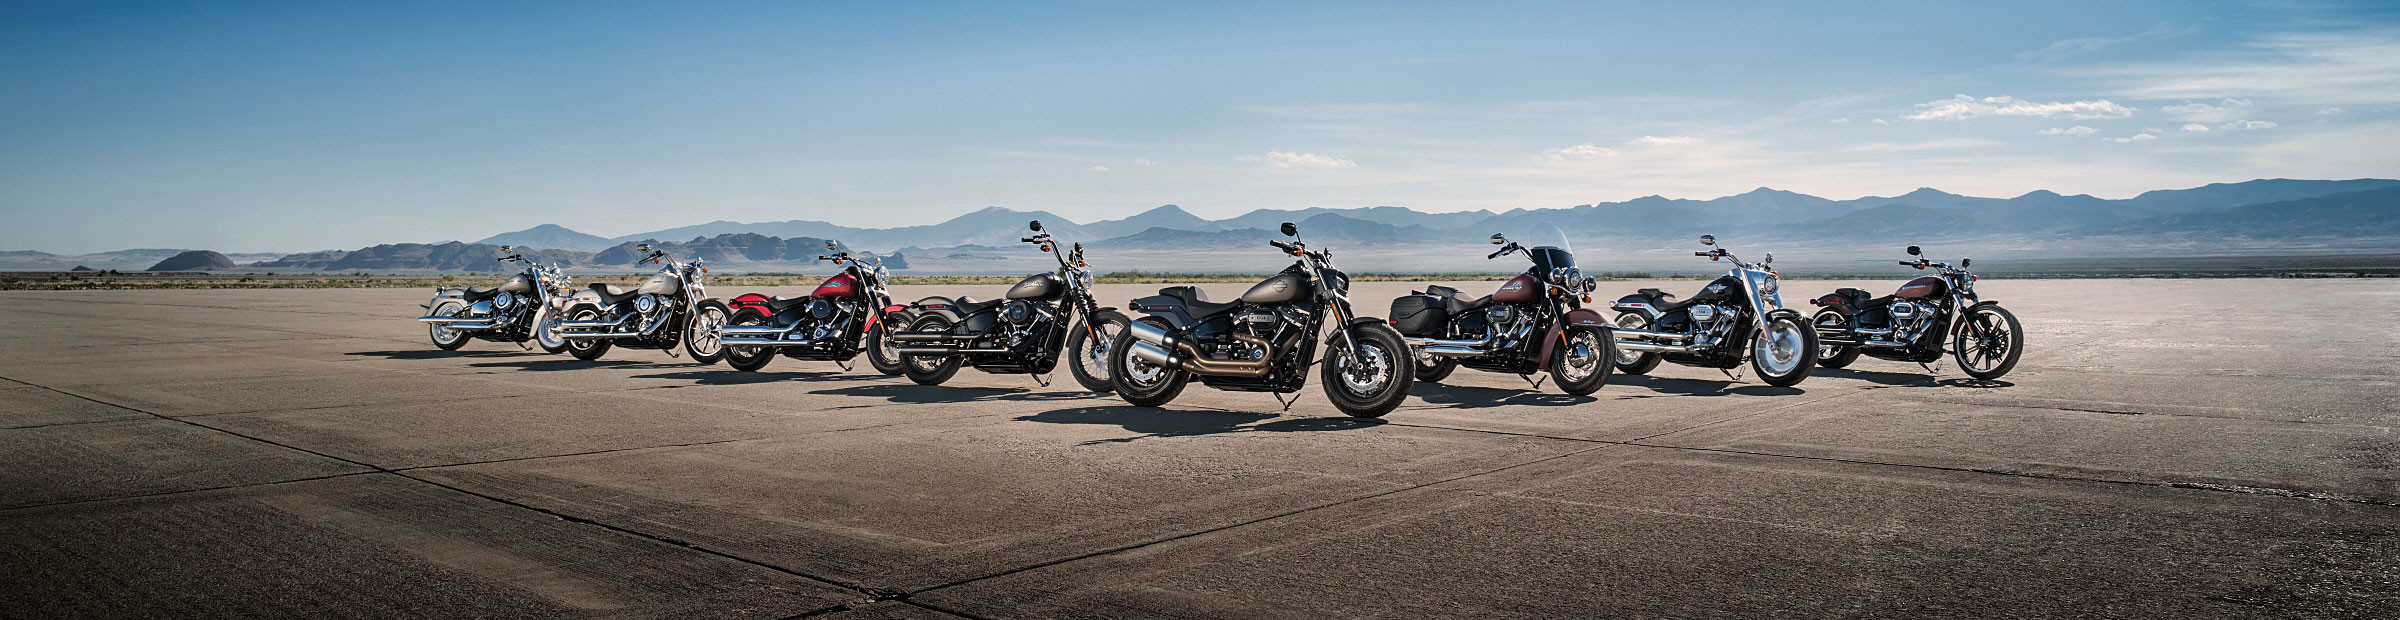 New Arrivals | High Country Harley Davidson - Cheyenne